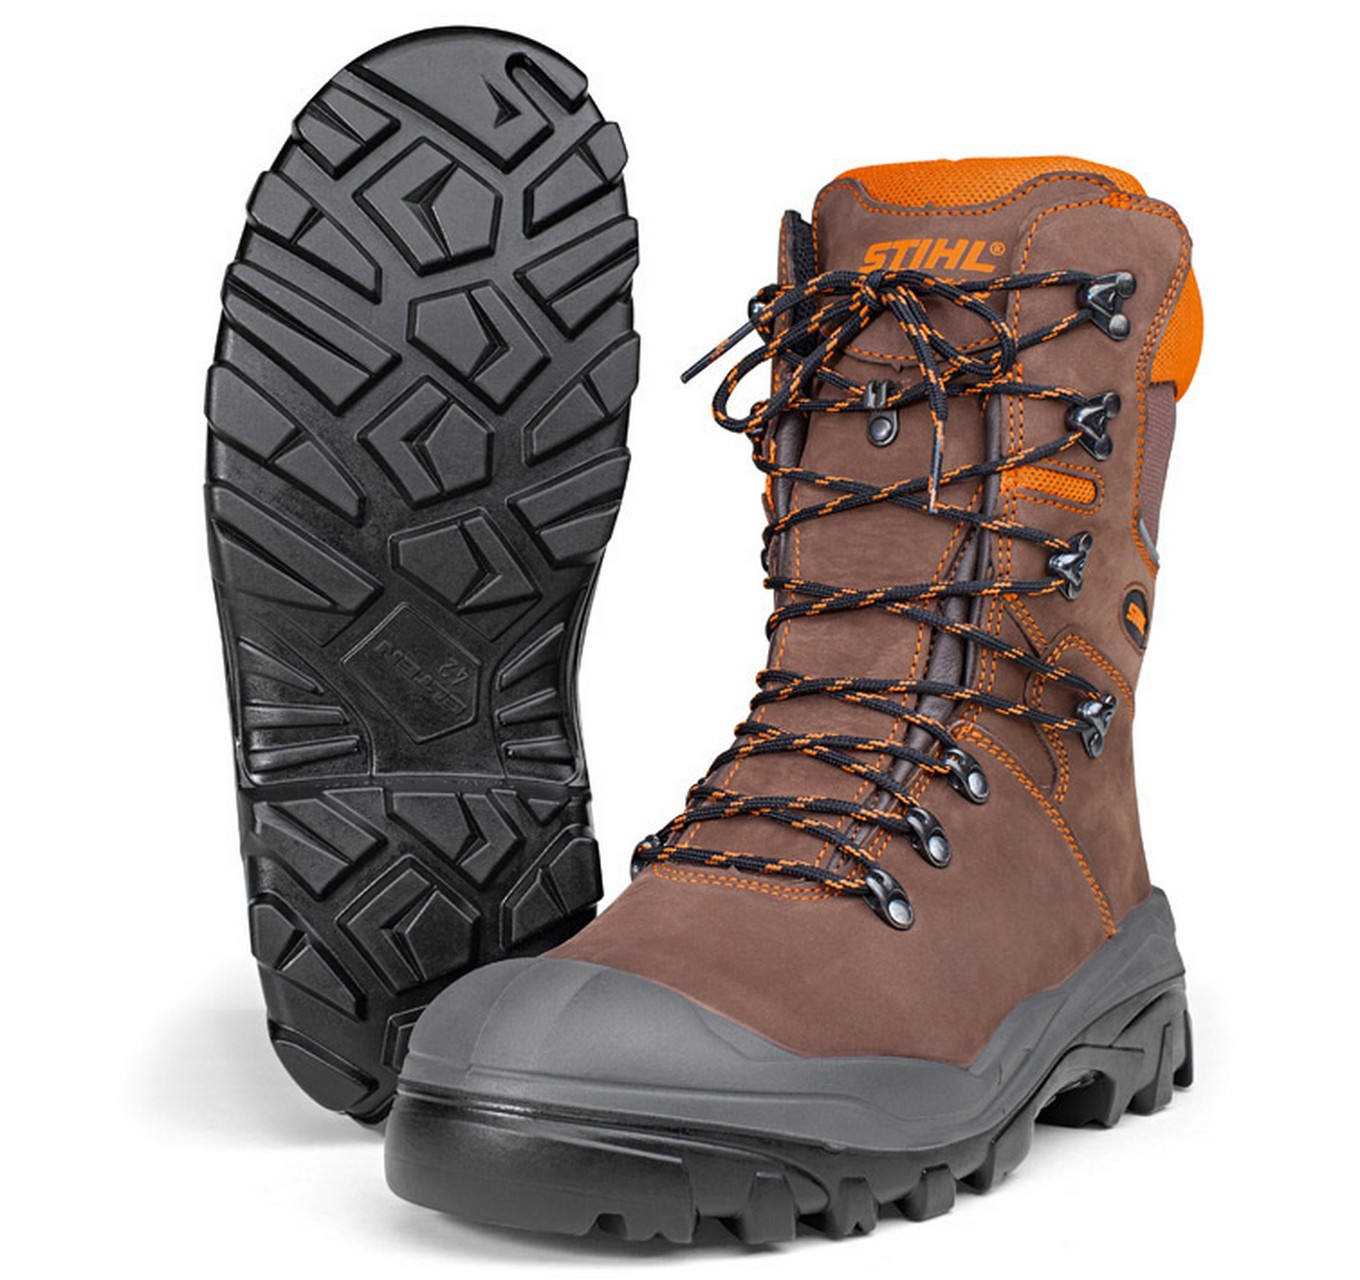 Dynamic S3 Chainsaw Boots 5.5